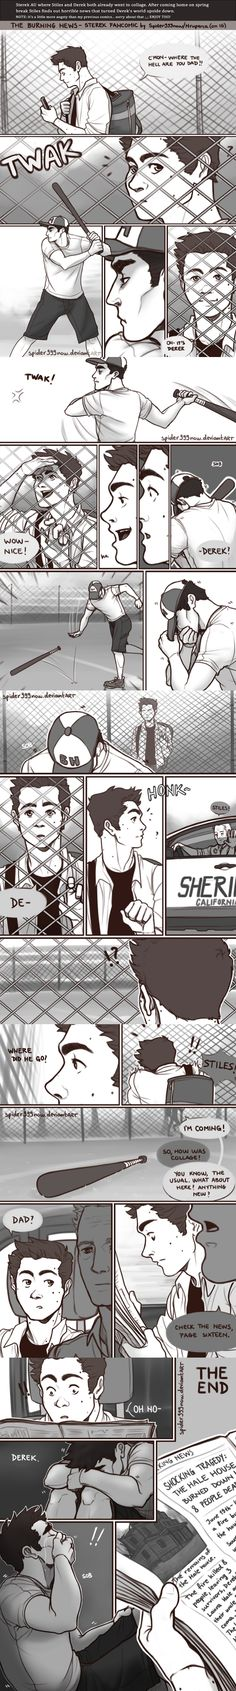 The Burning News-Sterek Fancomic